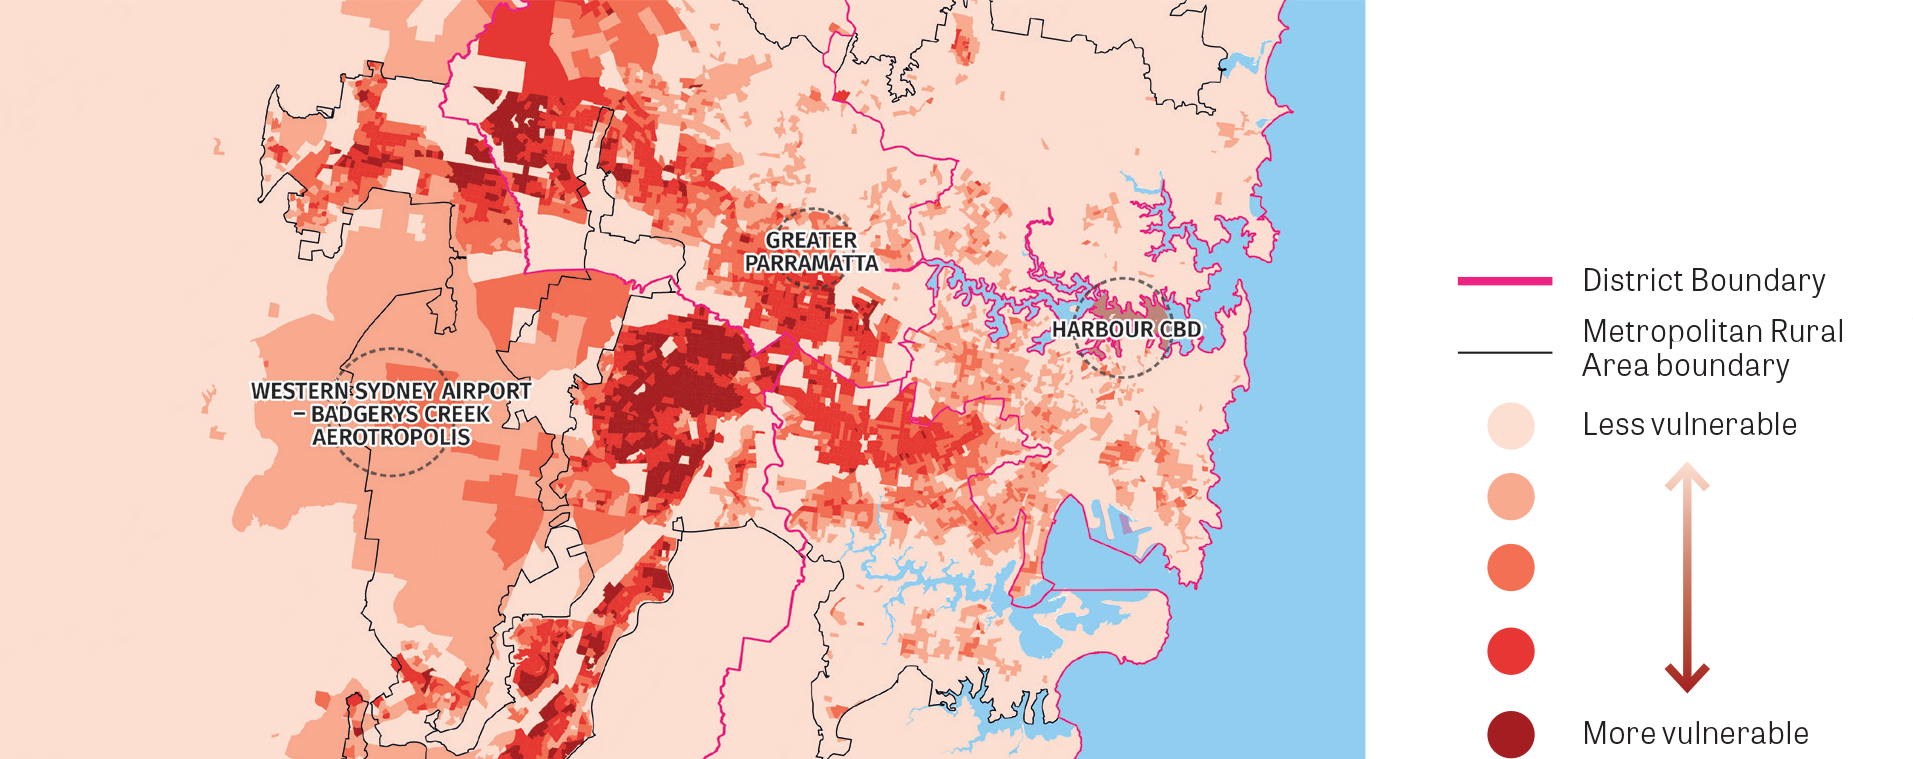 A stylised map focussed on the main urban areas in the Greater Sydney Region showing areas which are either more, or less, vulnerable to heatwaves.